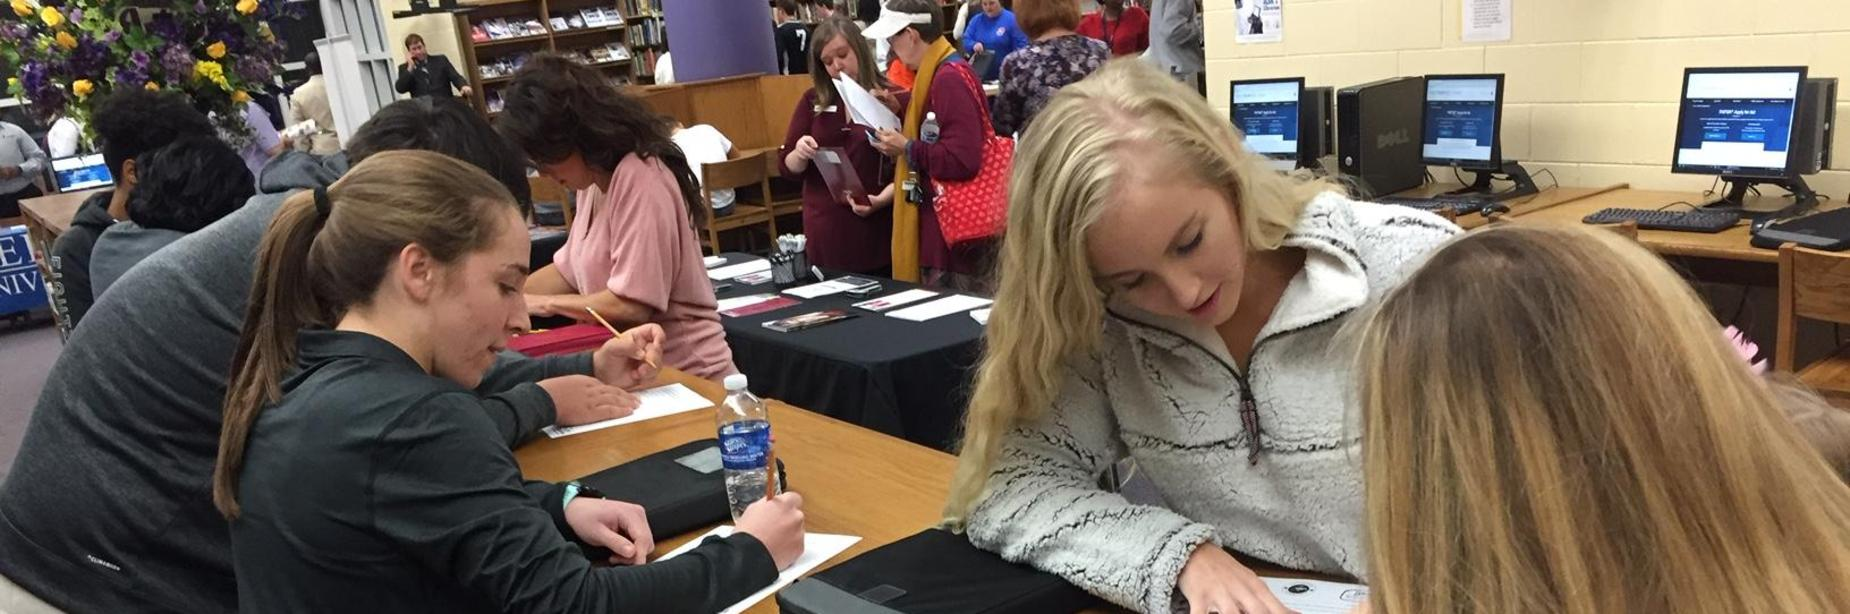 Students filling out applications at Jackson County's College and Scholarship Night held at MHS on December 4, 2018.